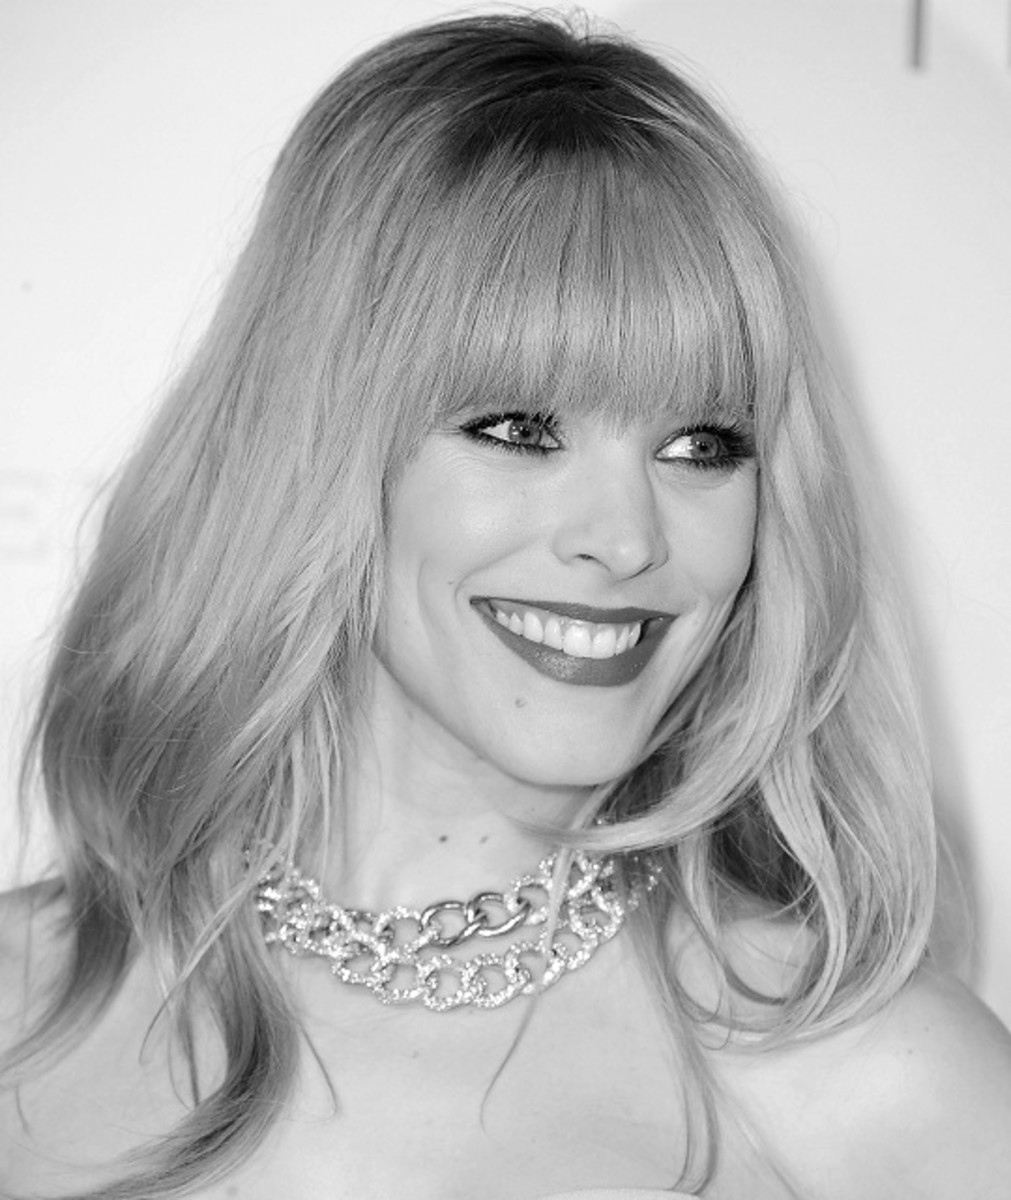 - Rachel McAdams, 2013 Hairstyles with Bangs for Round, Oval, Square, Heart, Oblong Face by Rosie2010 -